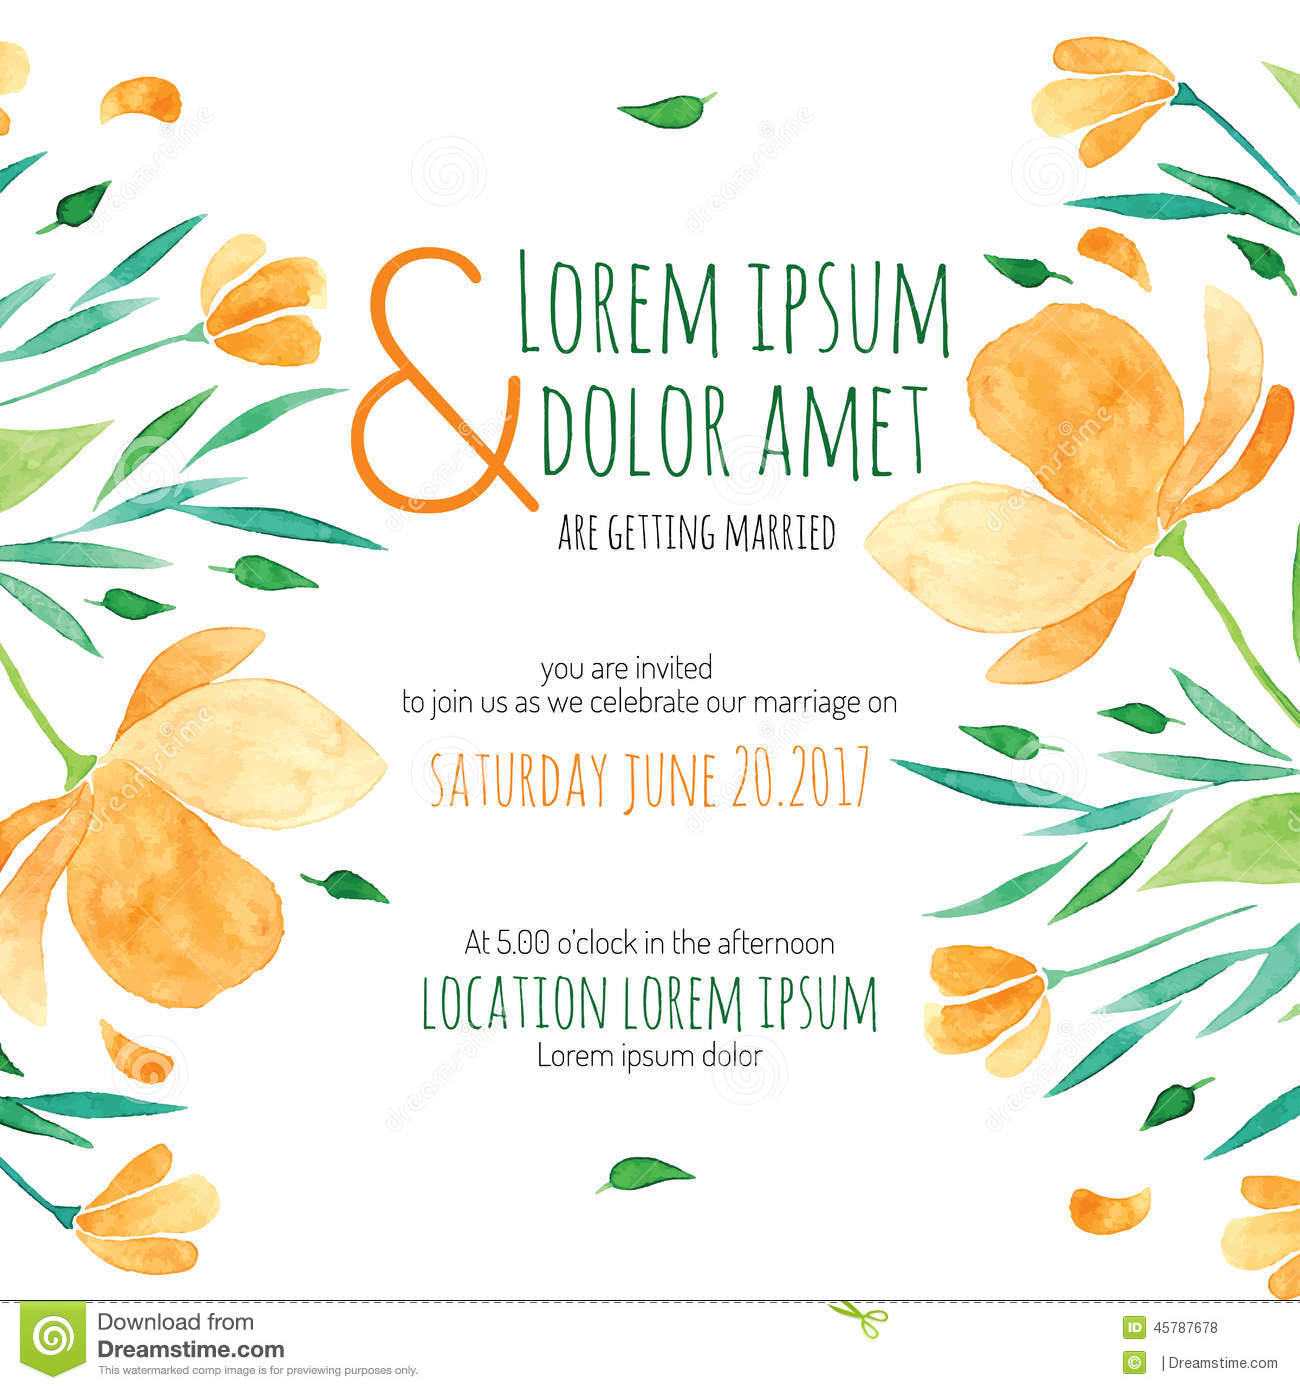 Invitation Bridal Shower Card With Orange Flower Stock Vector - Image ...